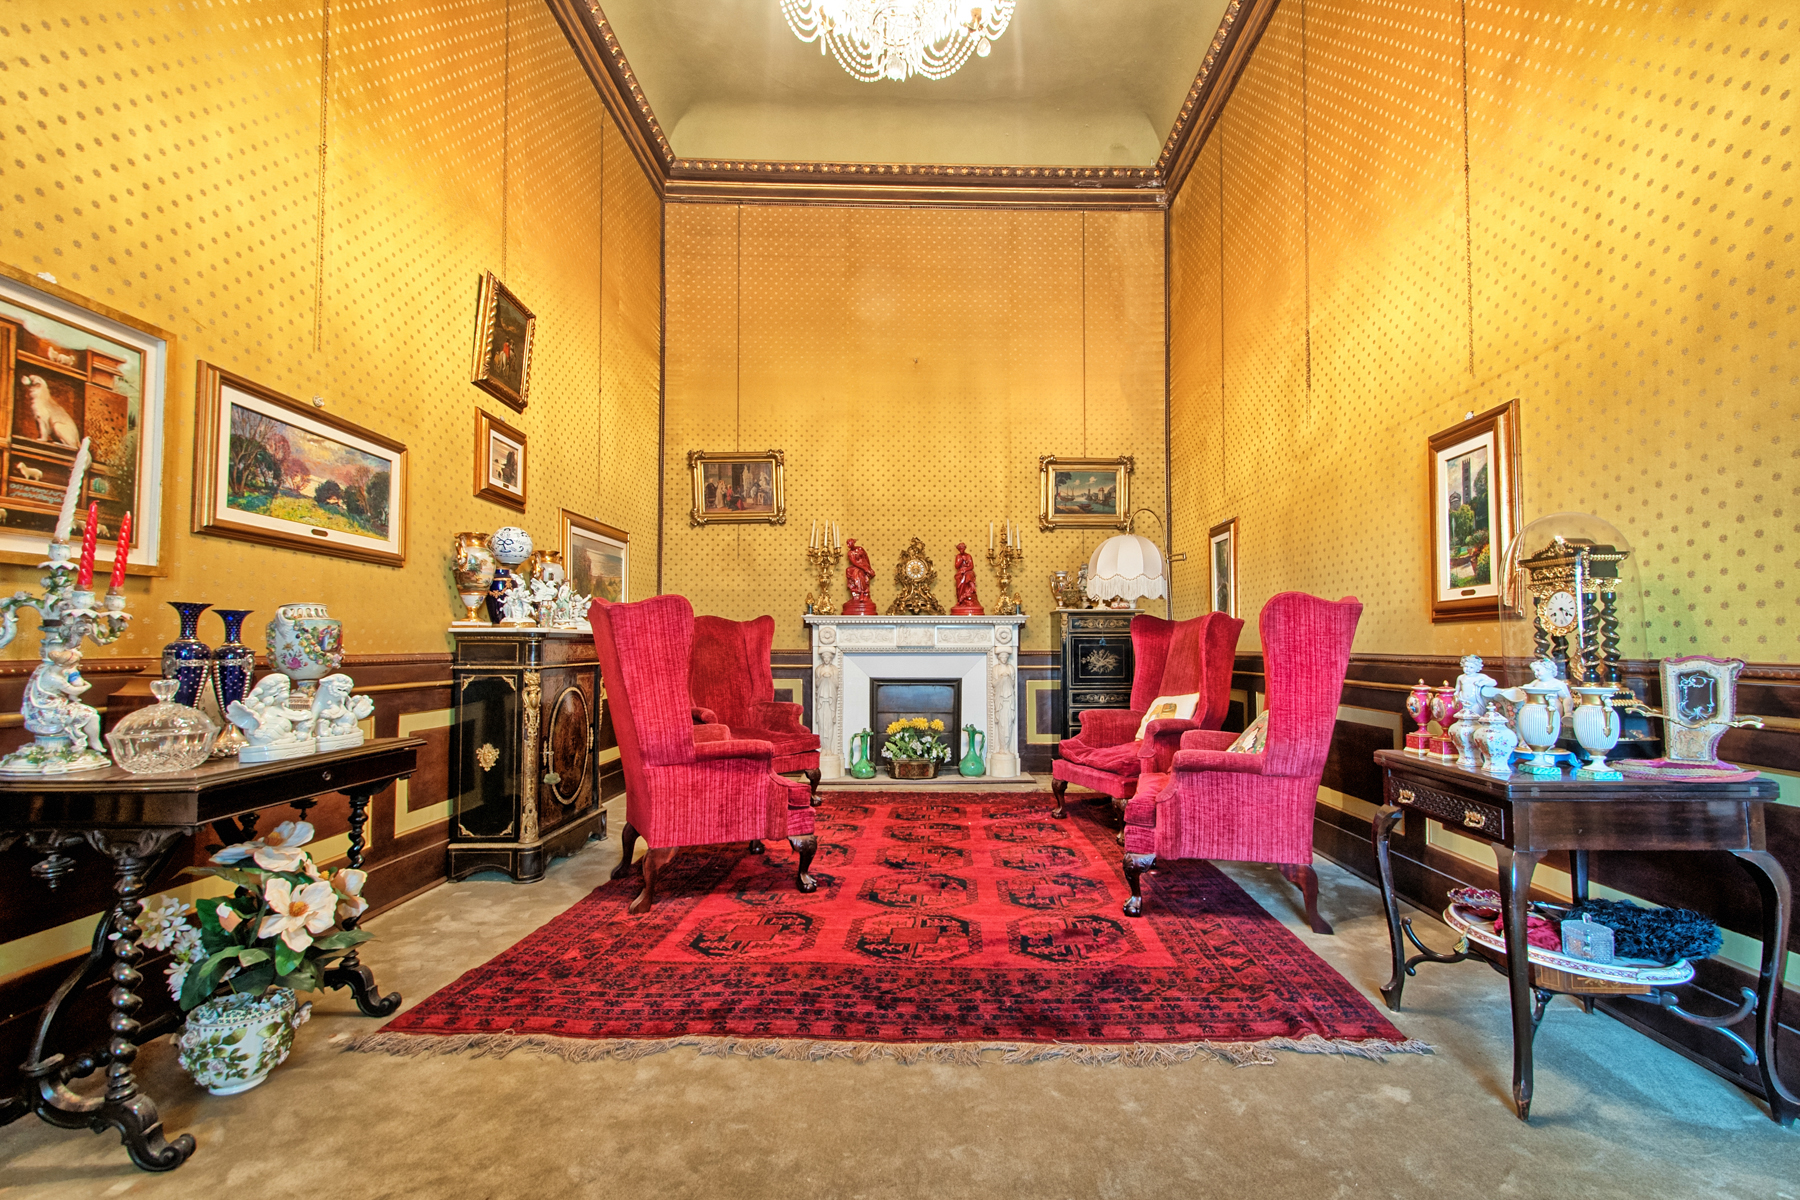 Additional photo for property listing at Elegant apartment in historical building Centro Storico, Lucca, Lucca Italie